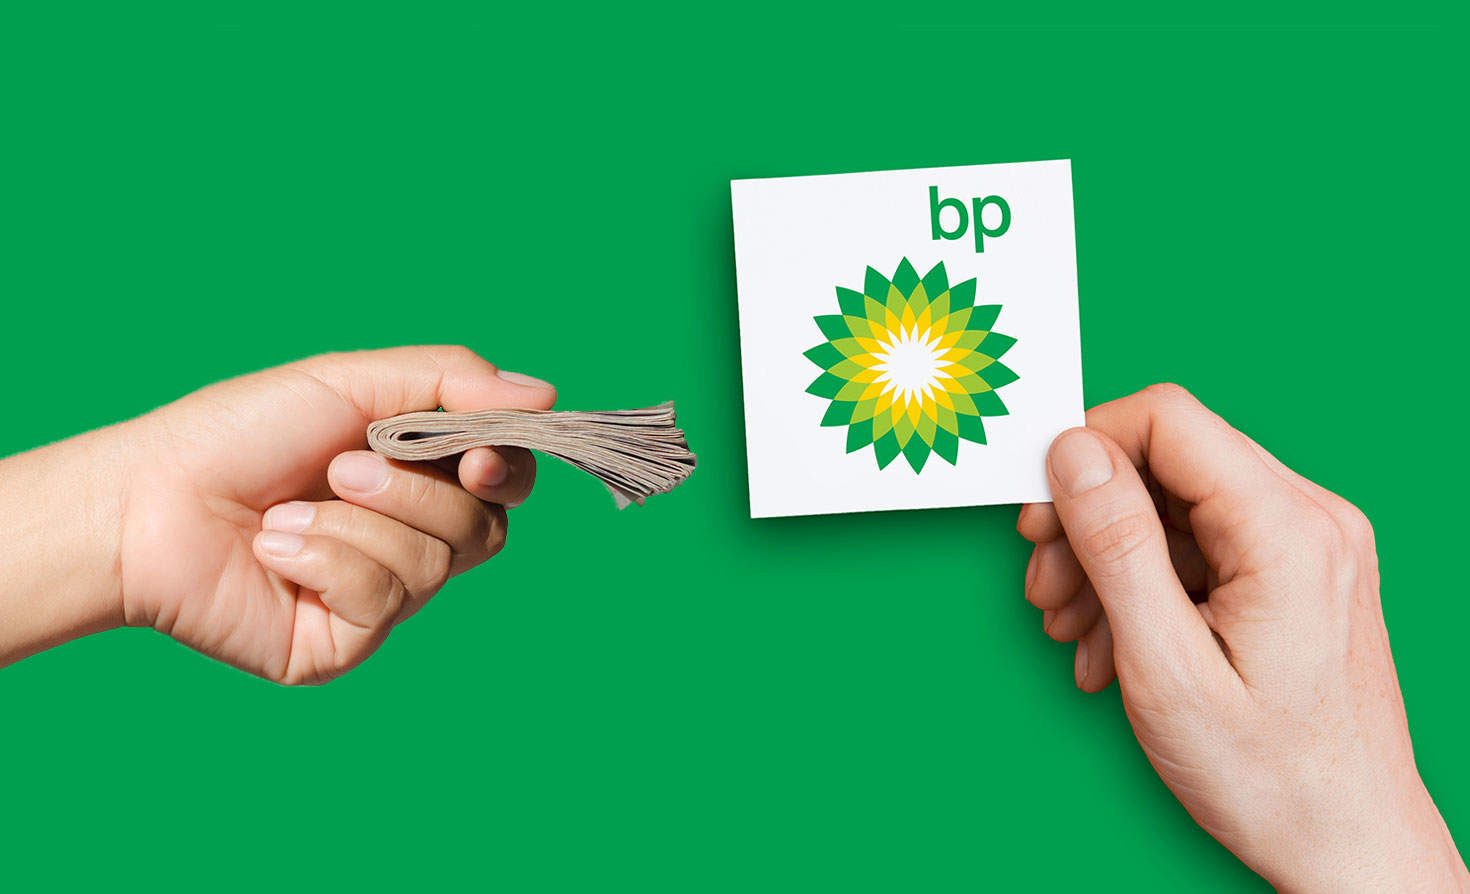 'Unprecedented': Why BP investors holding billions in shares are backing a climate resolution